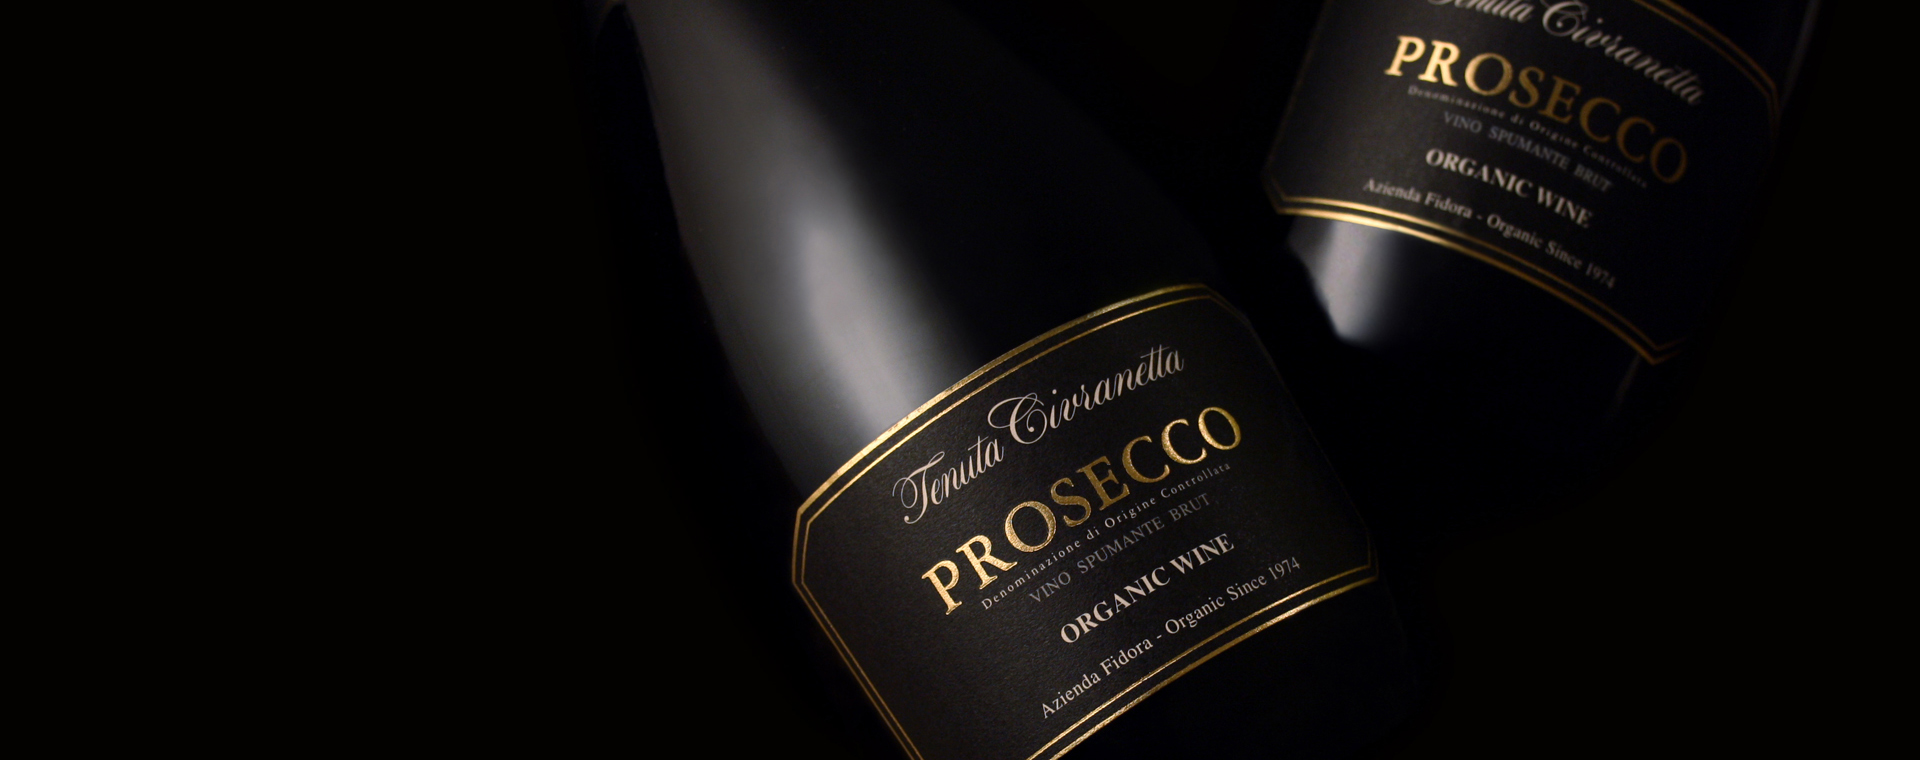 (English) Prosecco Brut EN prova